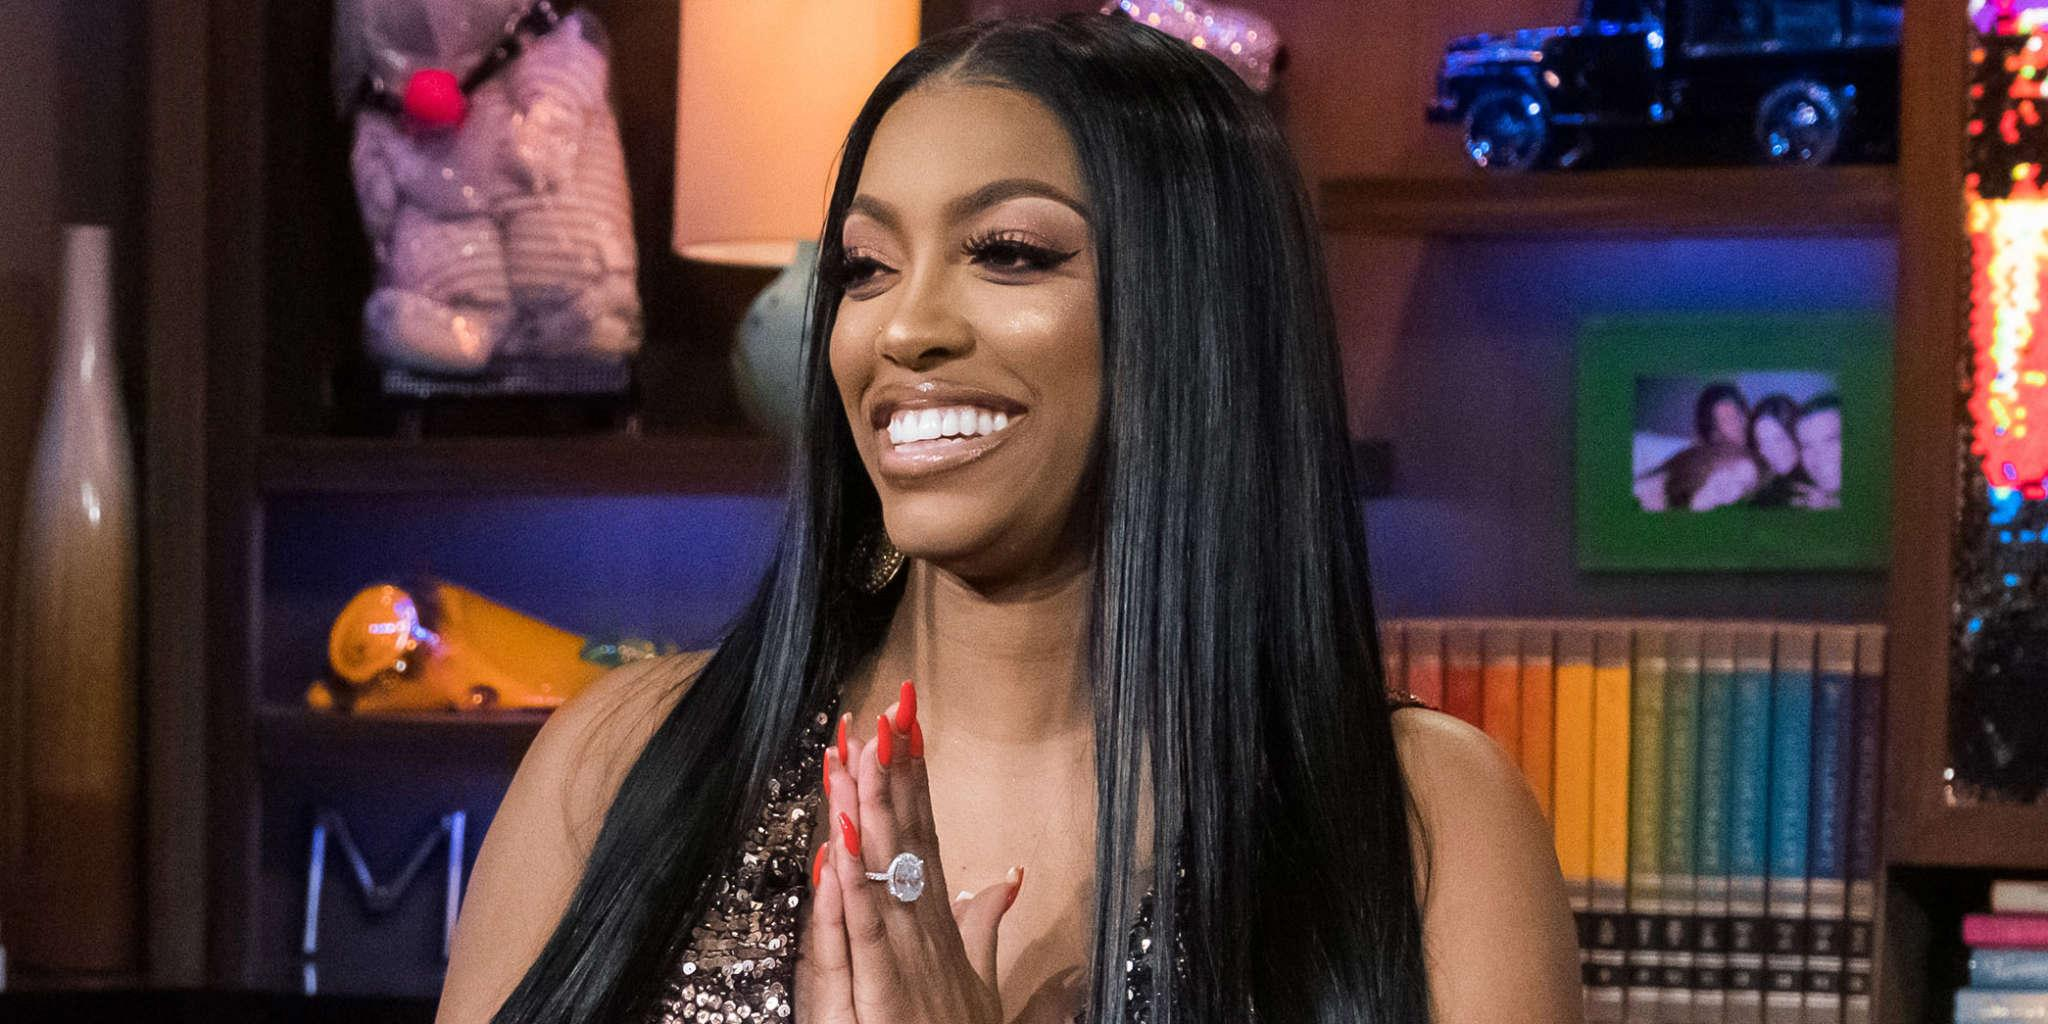 Porsha Williams Is Slaying In This Black And White Outfit - See Her Pic